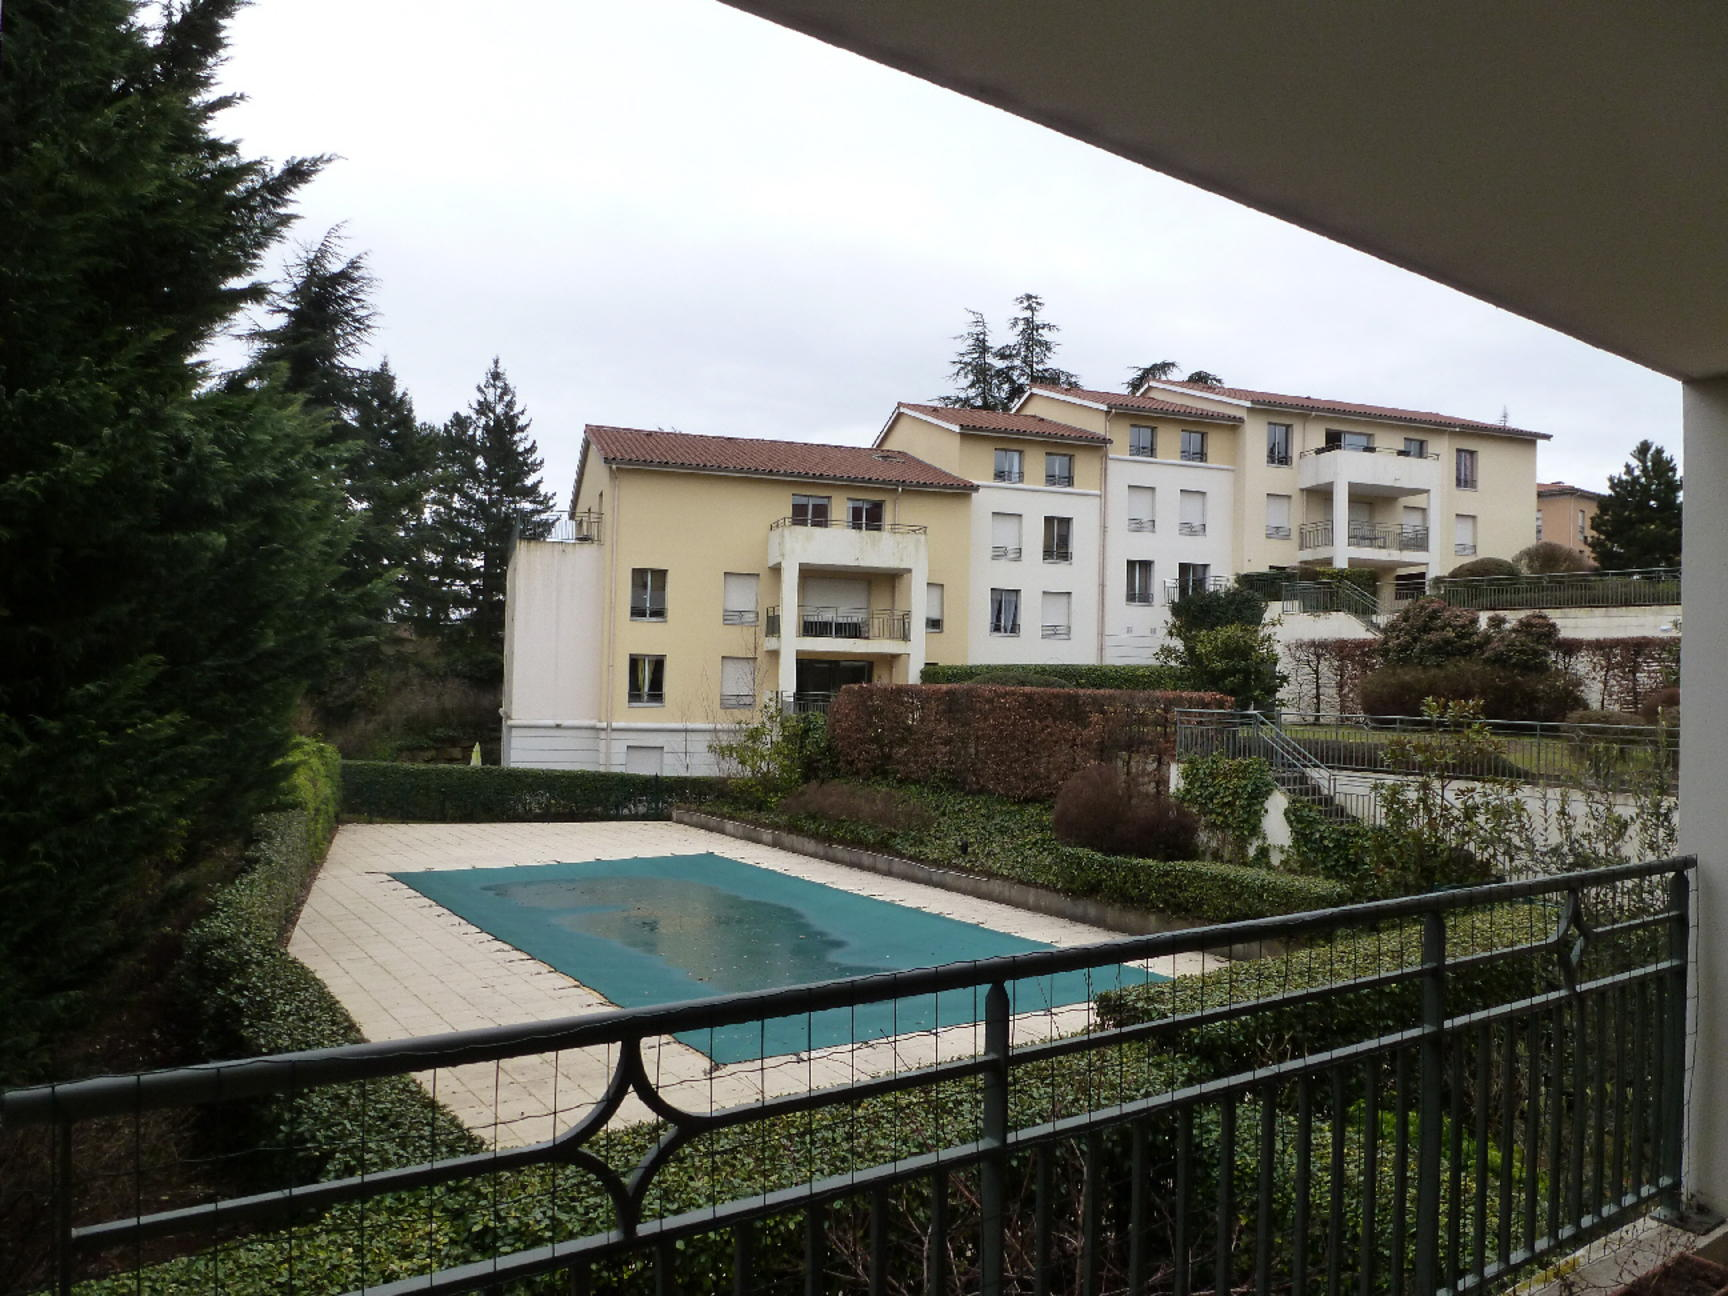 APPARTEMENT 120M2 COEUR DARDILLY LE HAUT - Dardilly